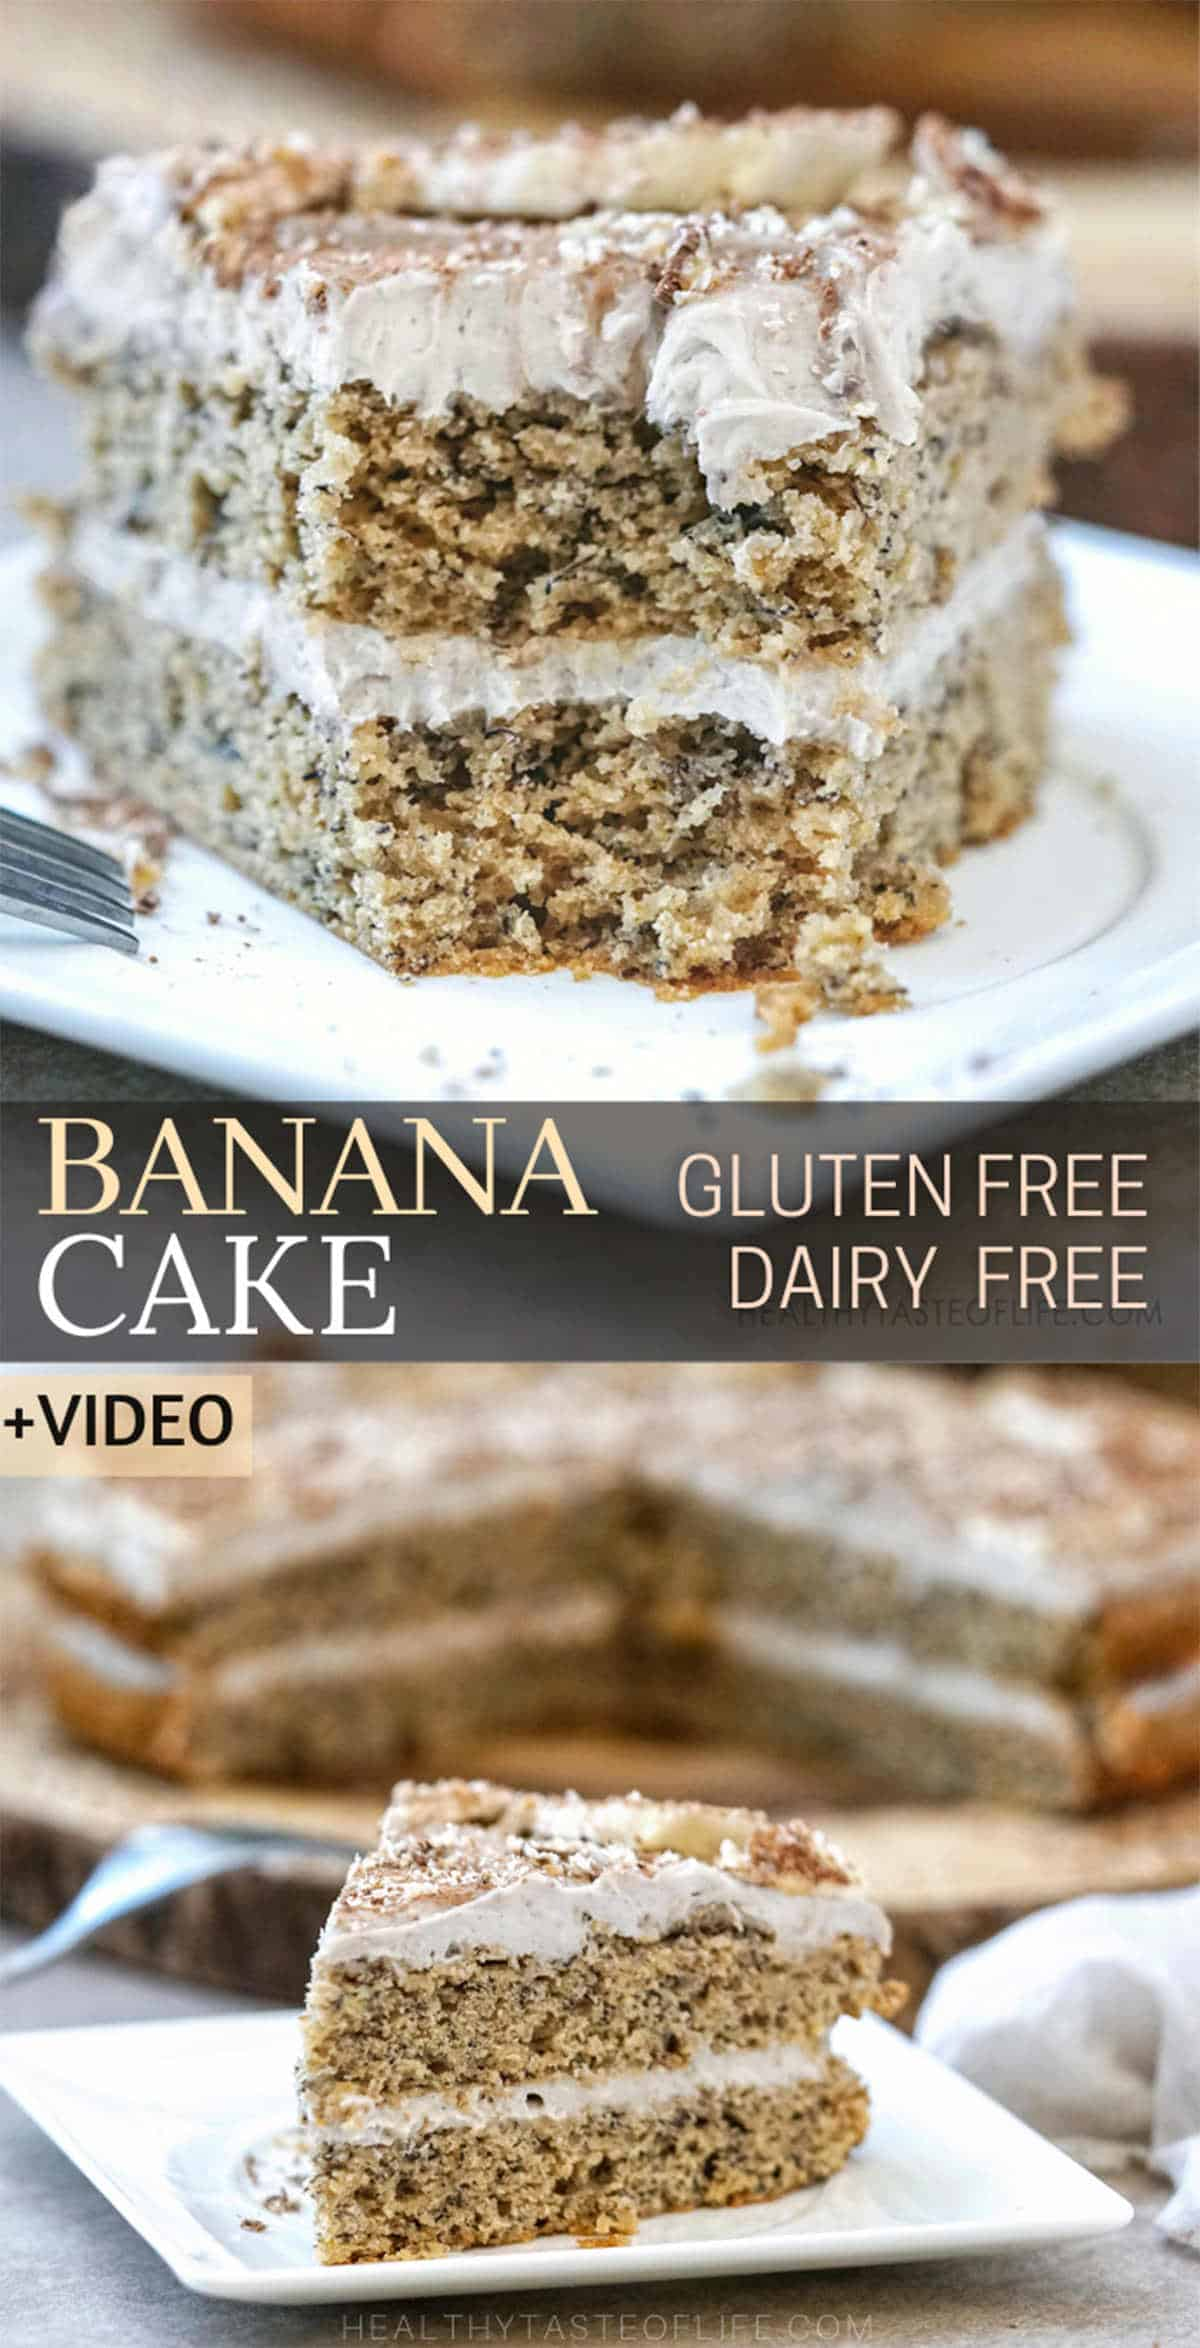 A fluffy and moist gluten free banana cake infused with natural banana flavor made with healthier ingredients and mostly without refined sugar. Enjoy this layered gluten free banana cake as it is (make a single layer) or finish it with a buttery dairy free frosting. Decorate with fresh banana slices and touch of powdered cacao if you like! Gluten free dairy free banana cake. #bananacake #glutenfreecake #dairyfreecake